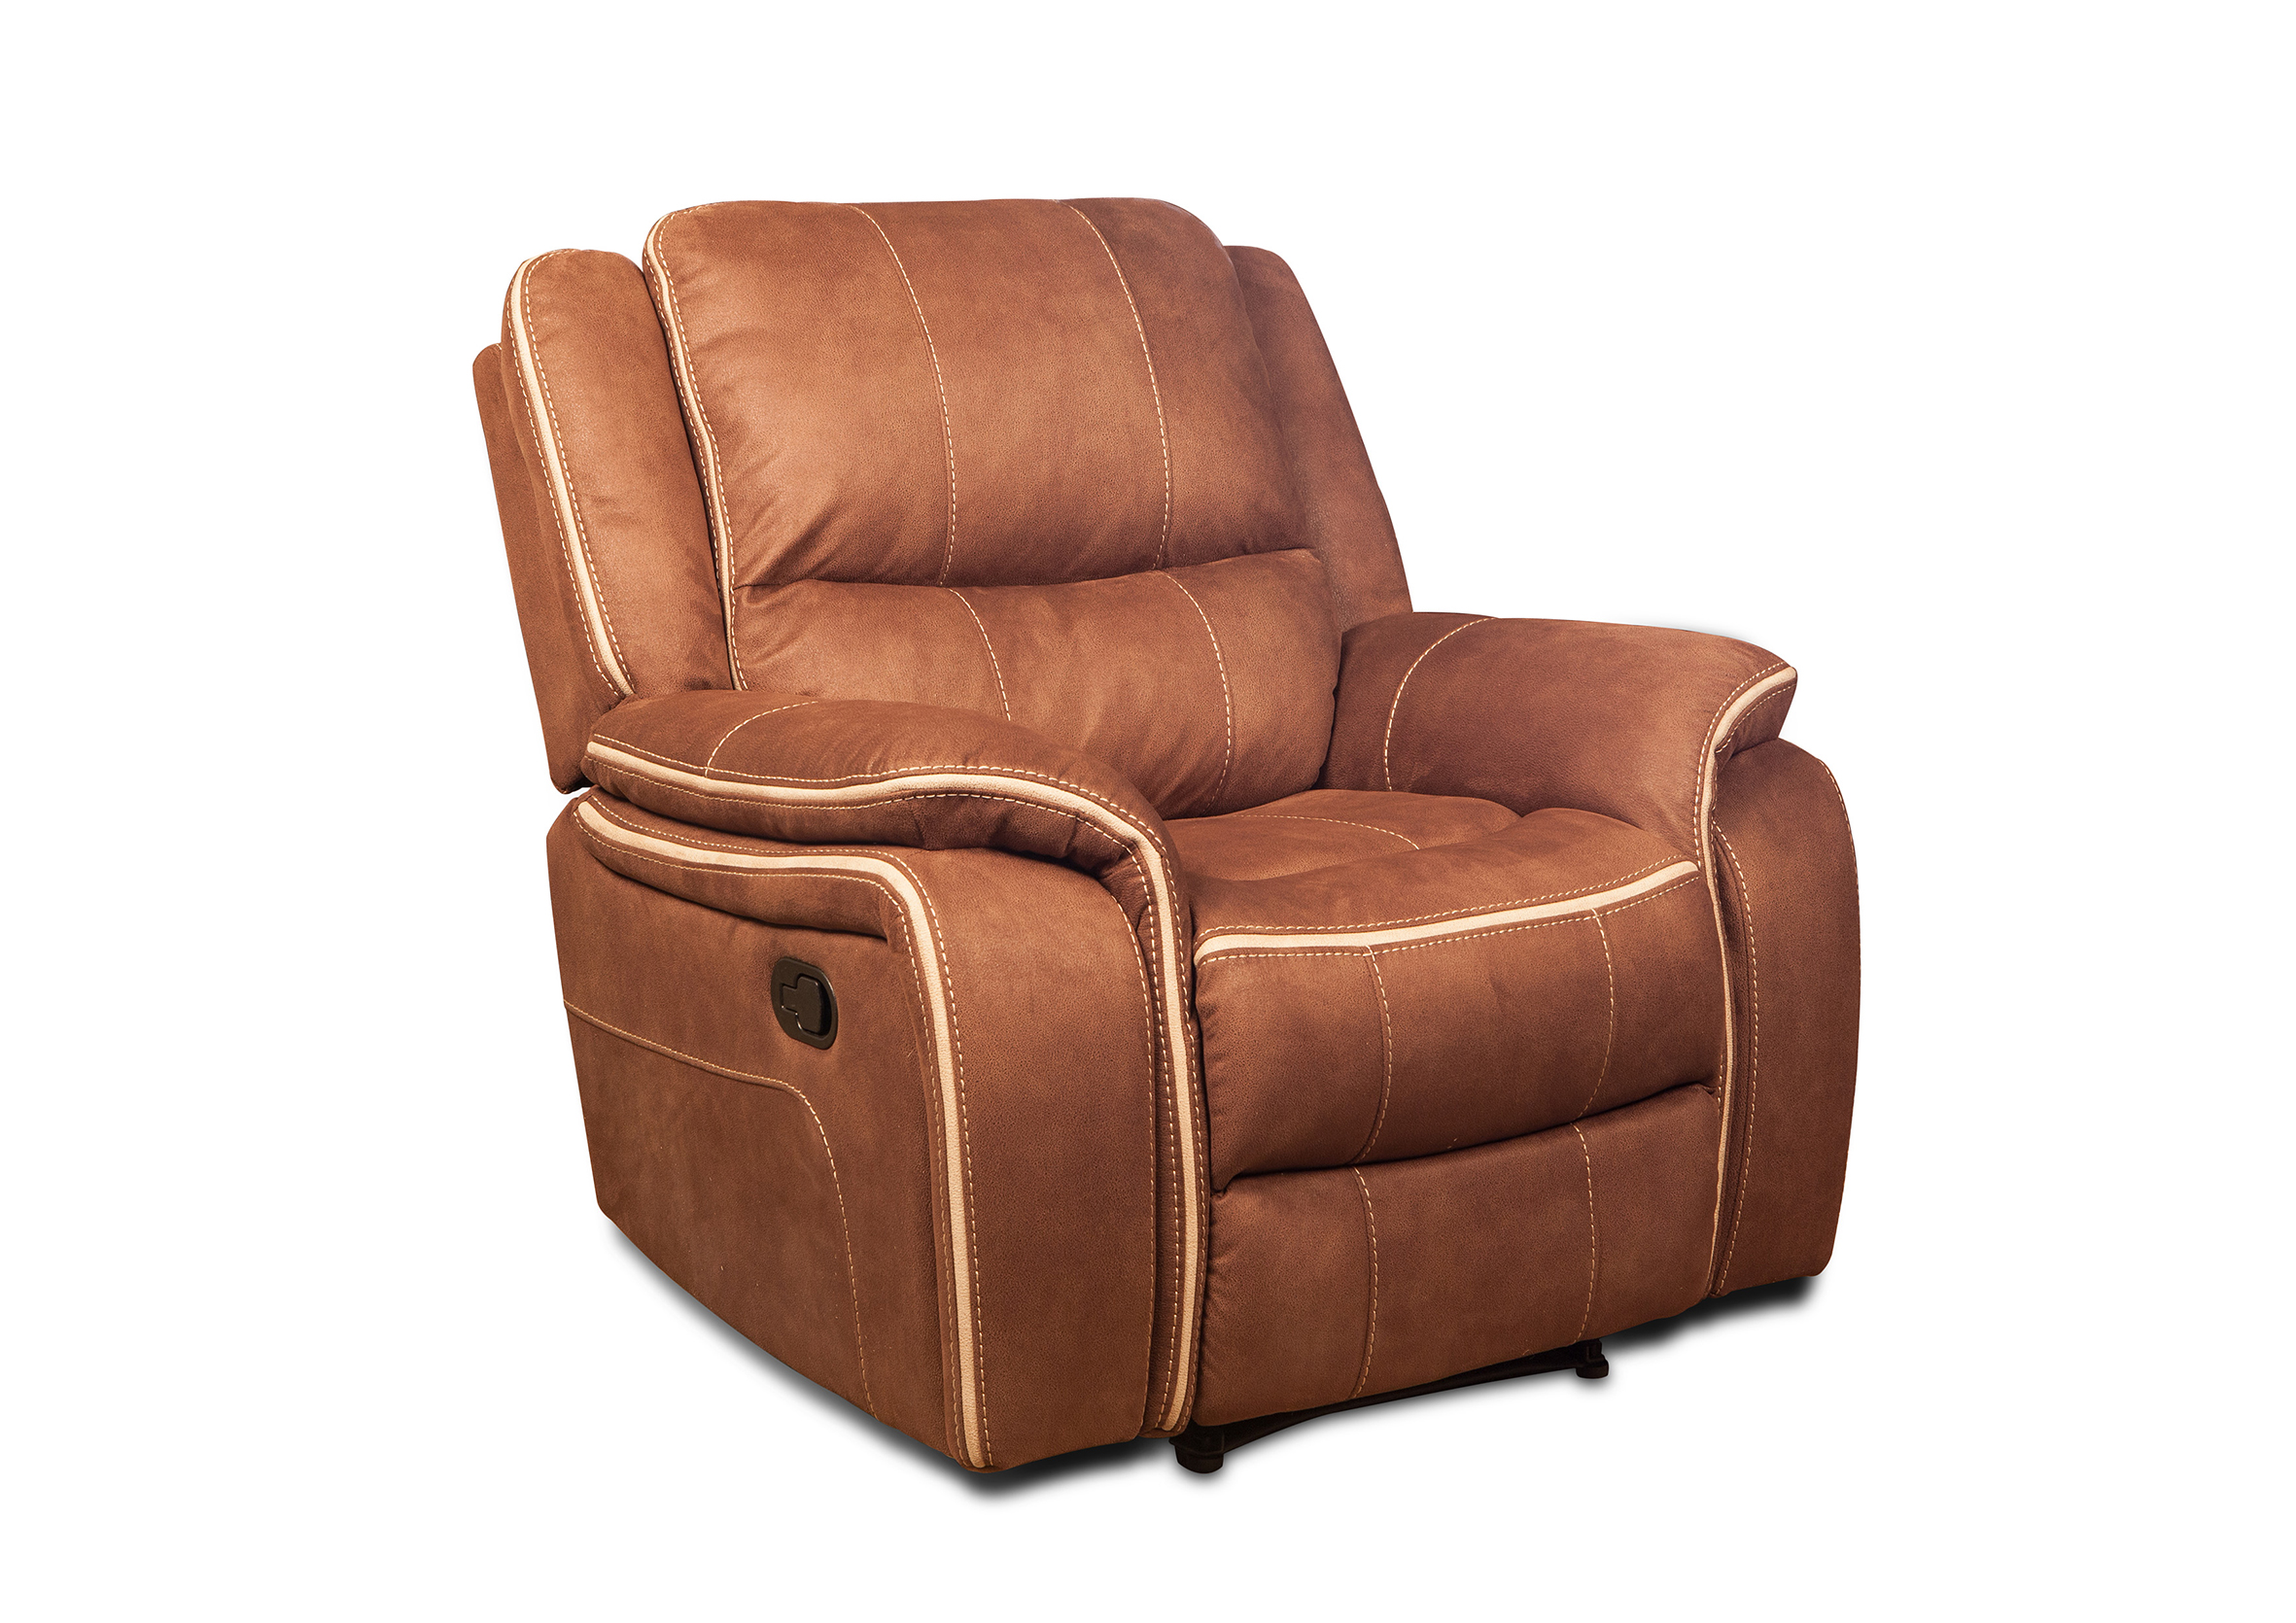 Fashion style soft fabric 6 seat 3+2+1 zero gravity recliner